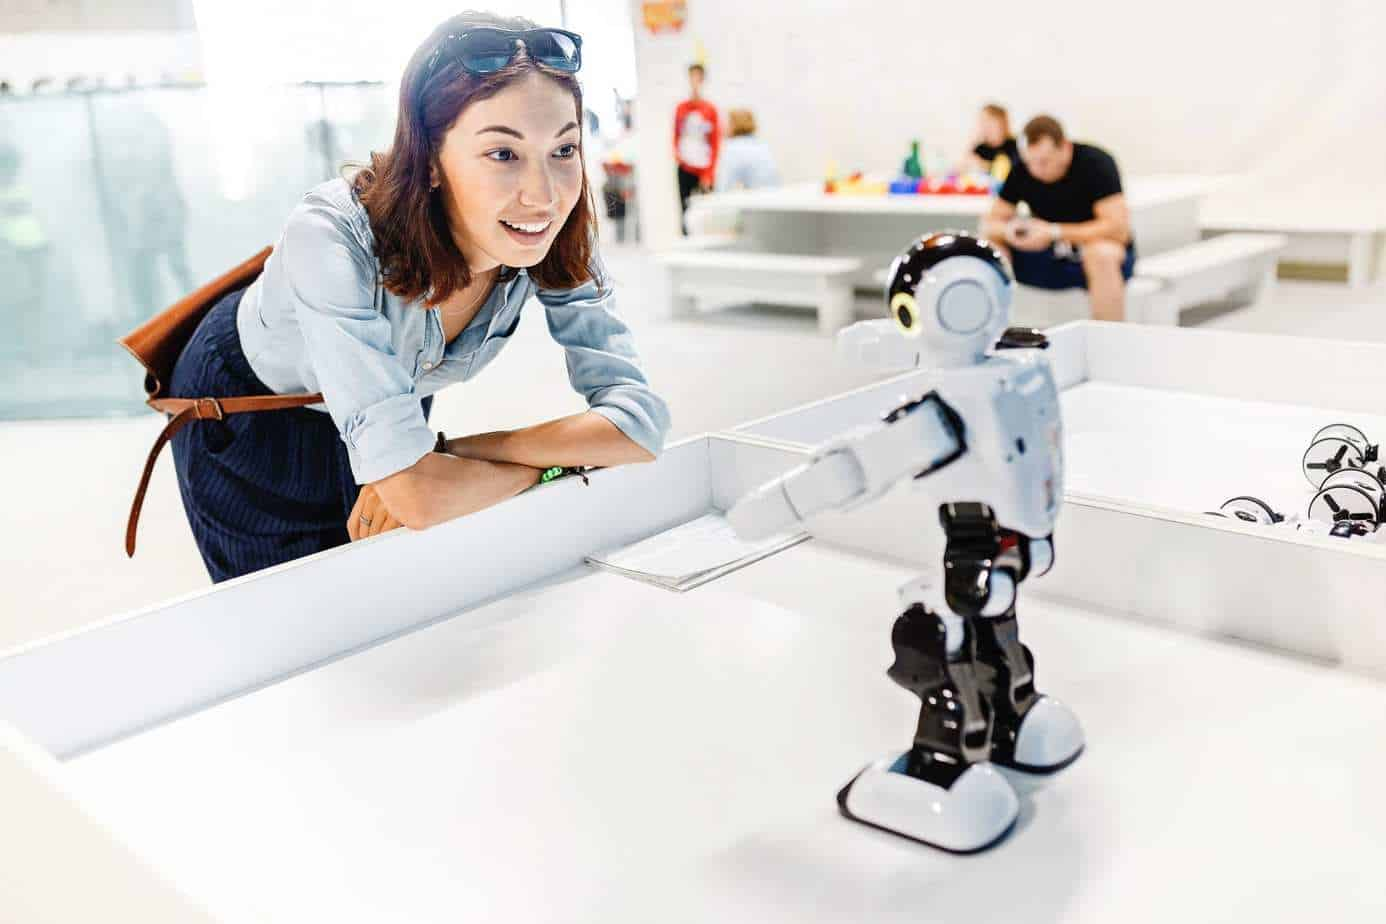 Young adult woman looking at the toy robot - geek gift idea